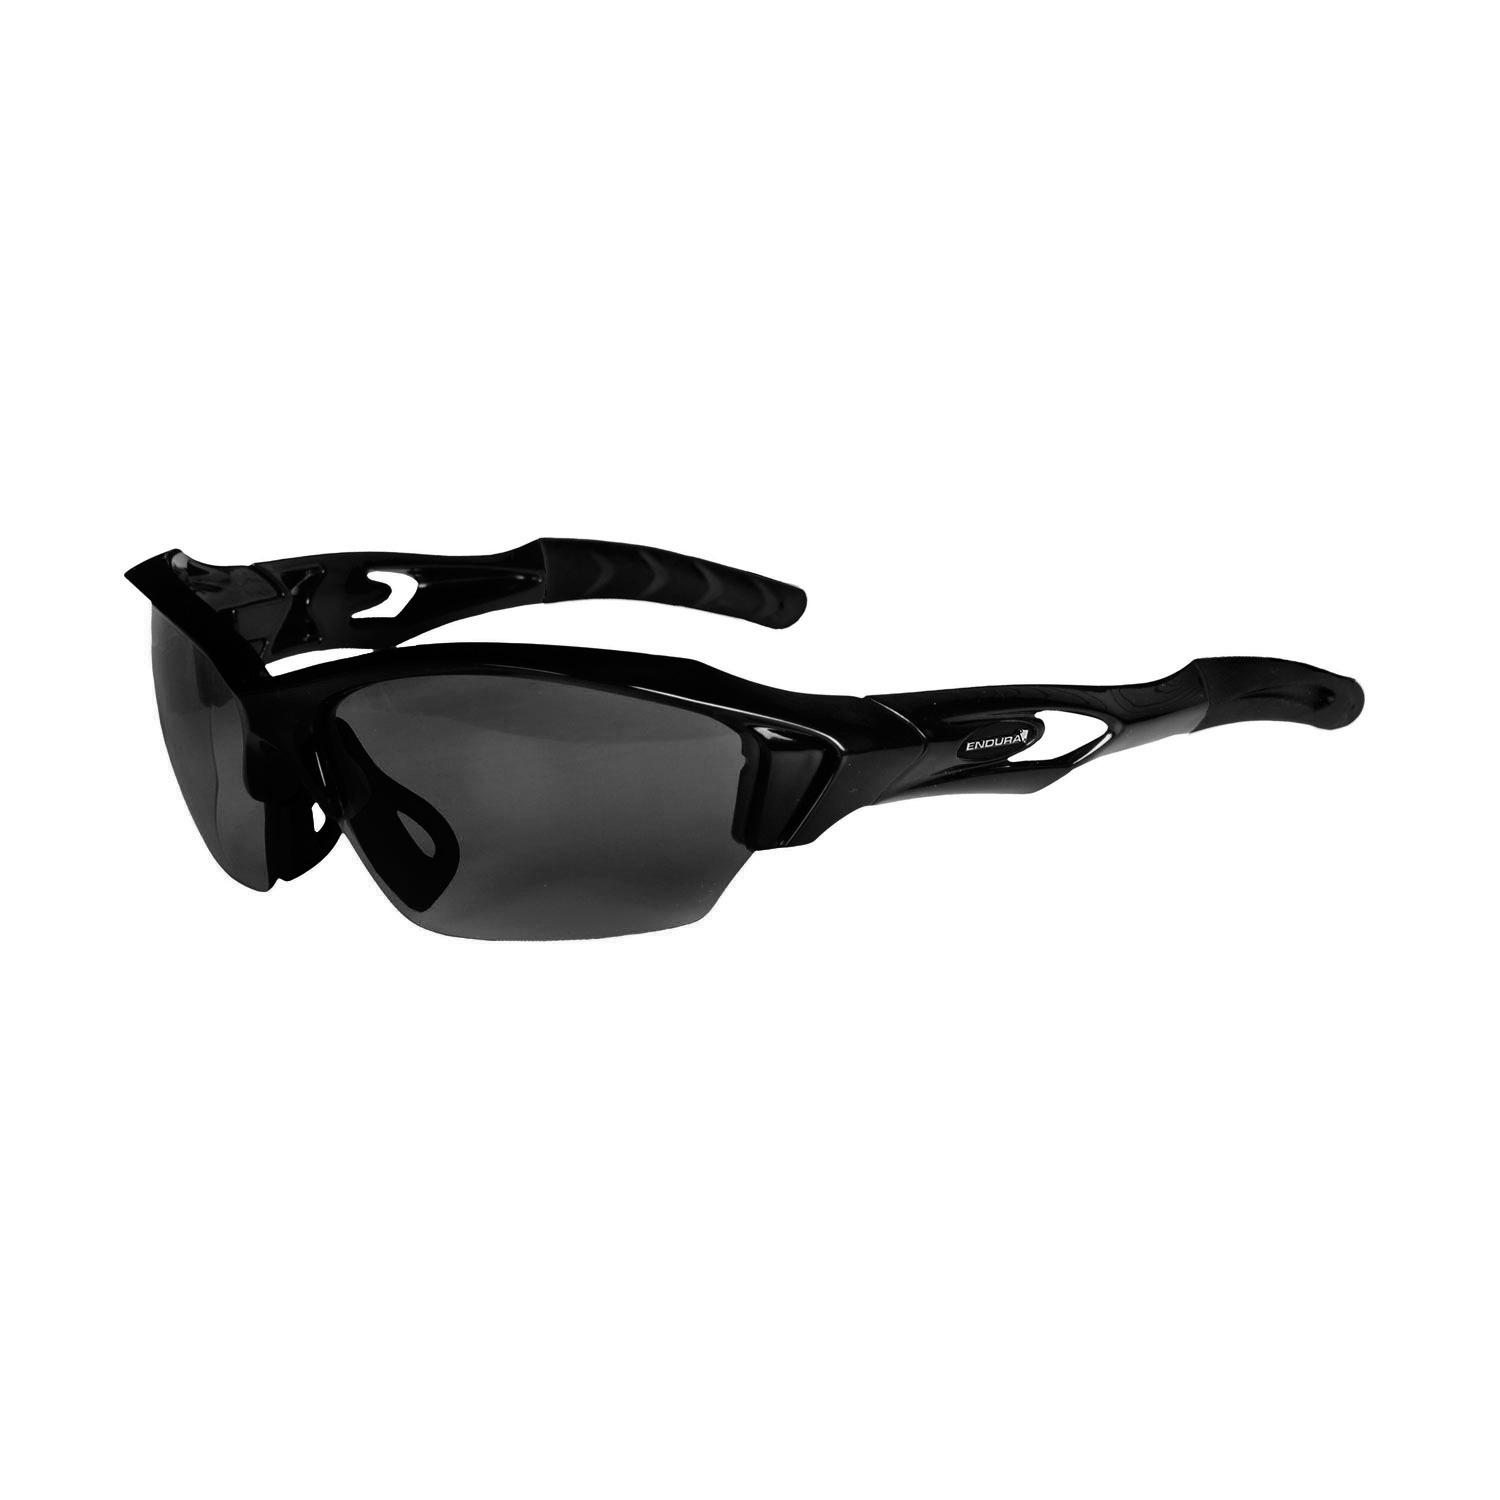 Endura Guppy Glasses 3 Sets Of Lenses (clear Persimmon And Smoke)